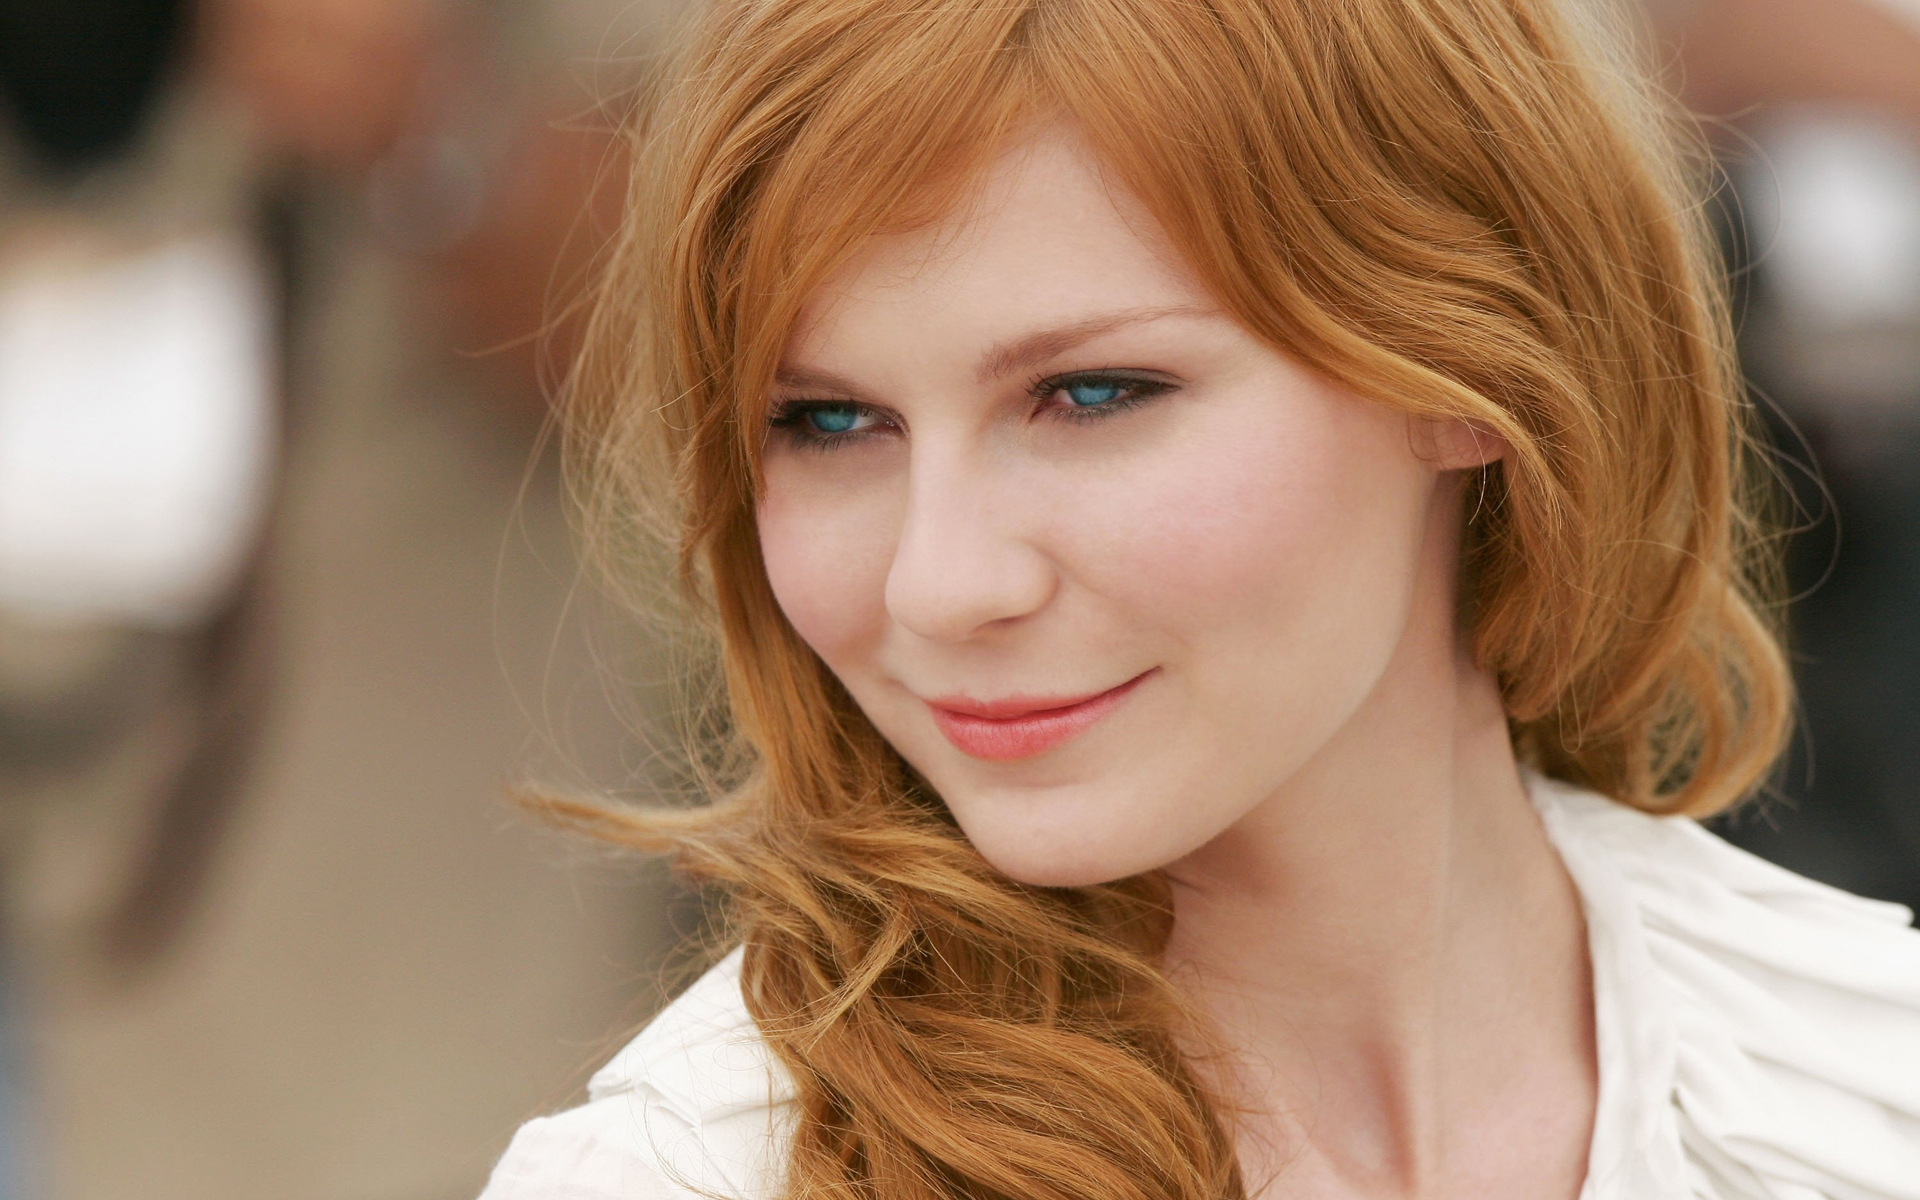 woman Kirsten Dunst HD Wallpaper